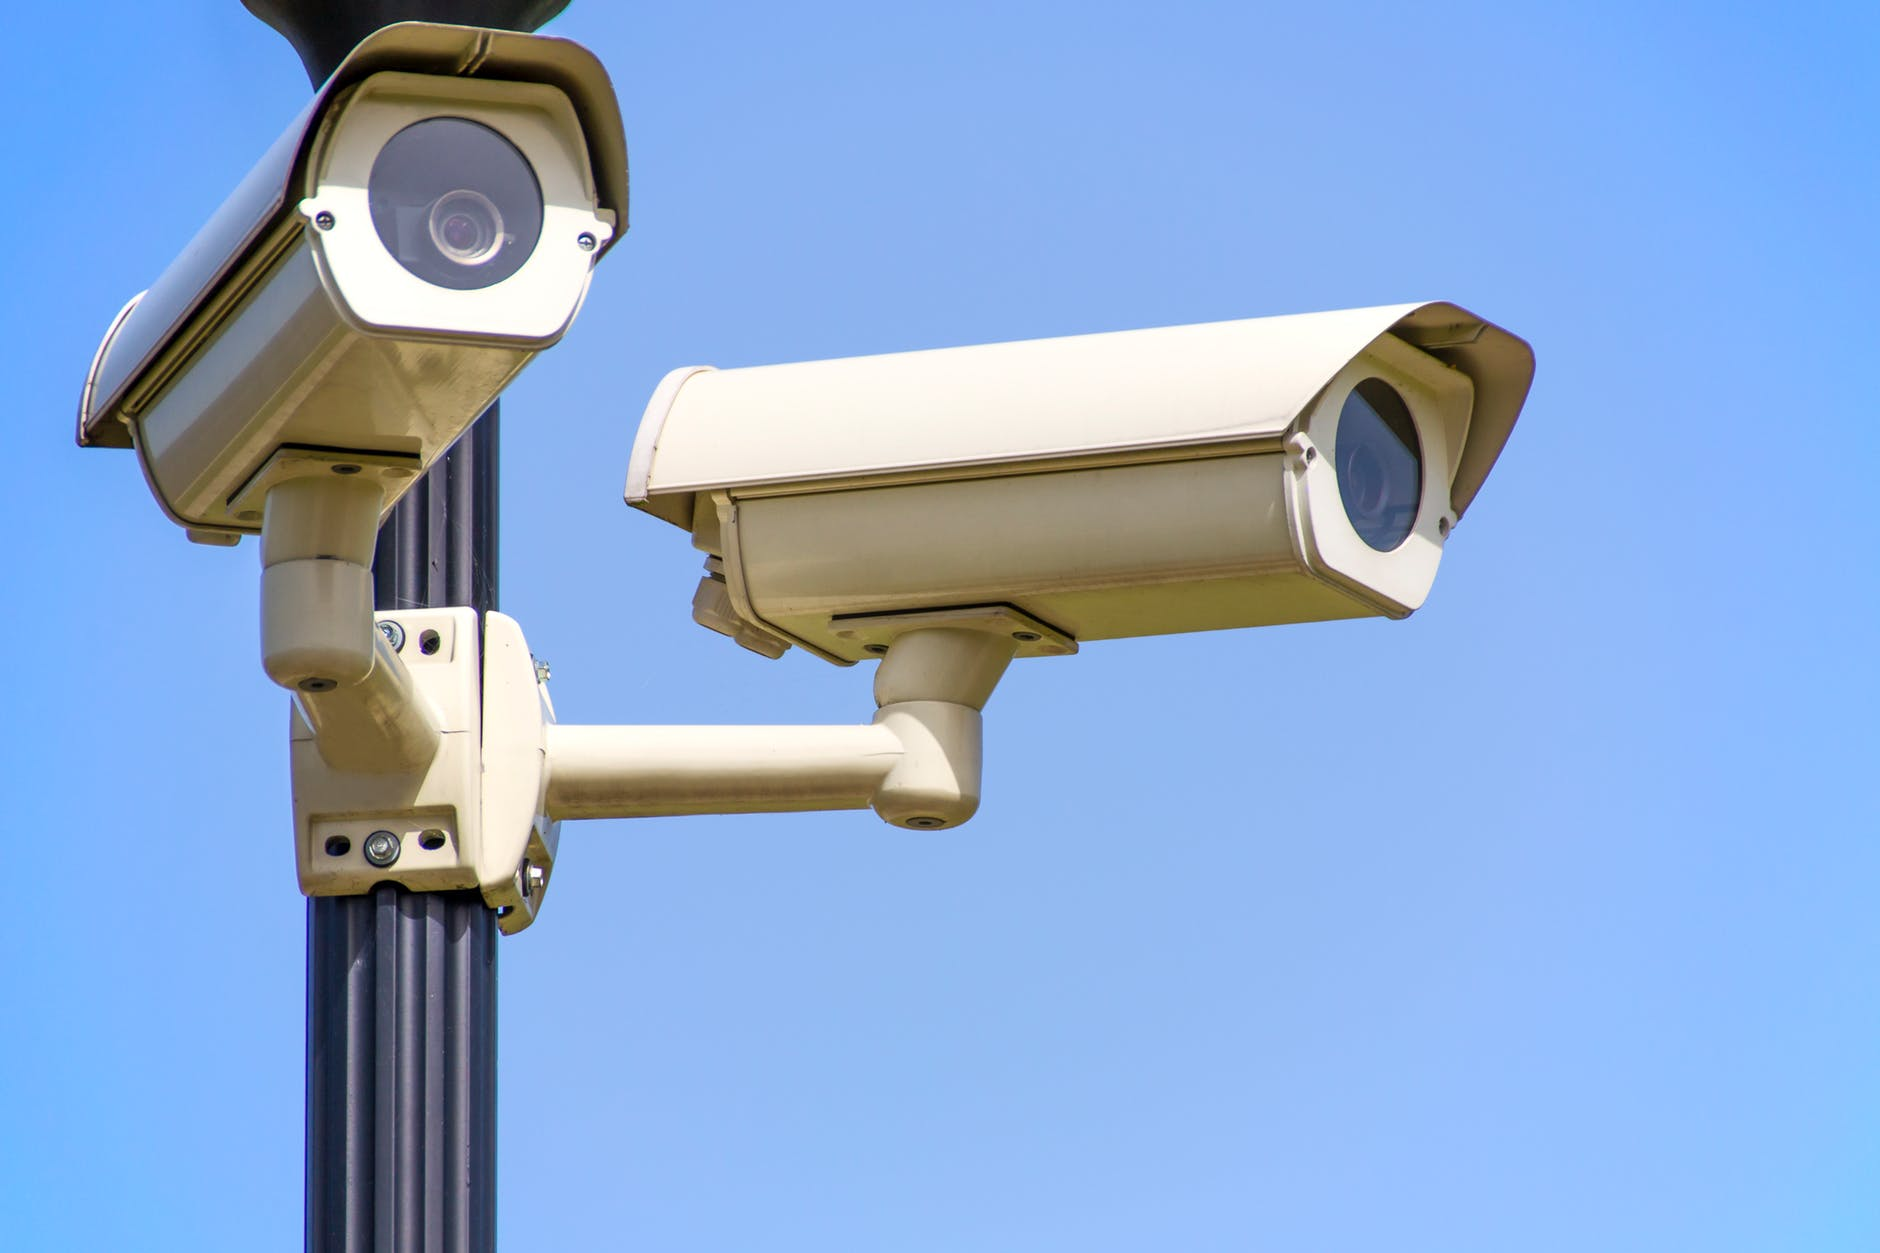 4 Benefits of Owning Outdoor Security Cameras